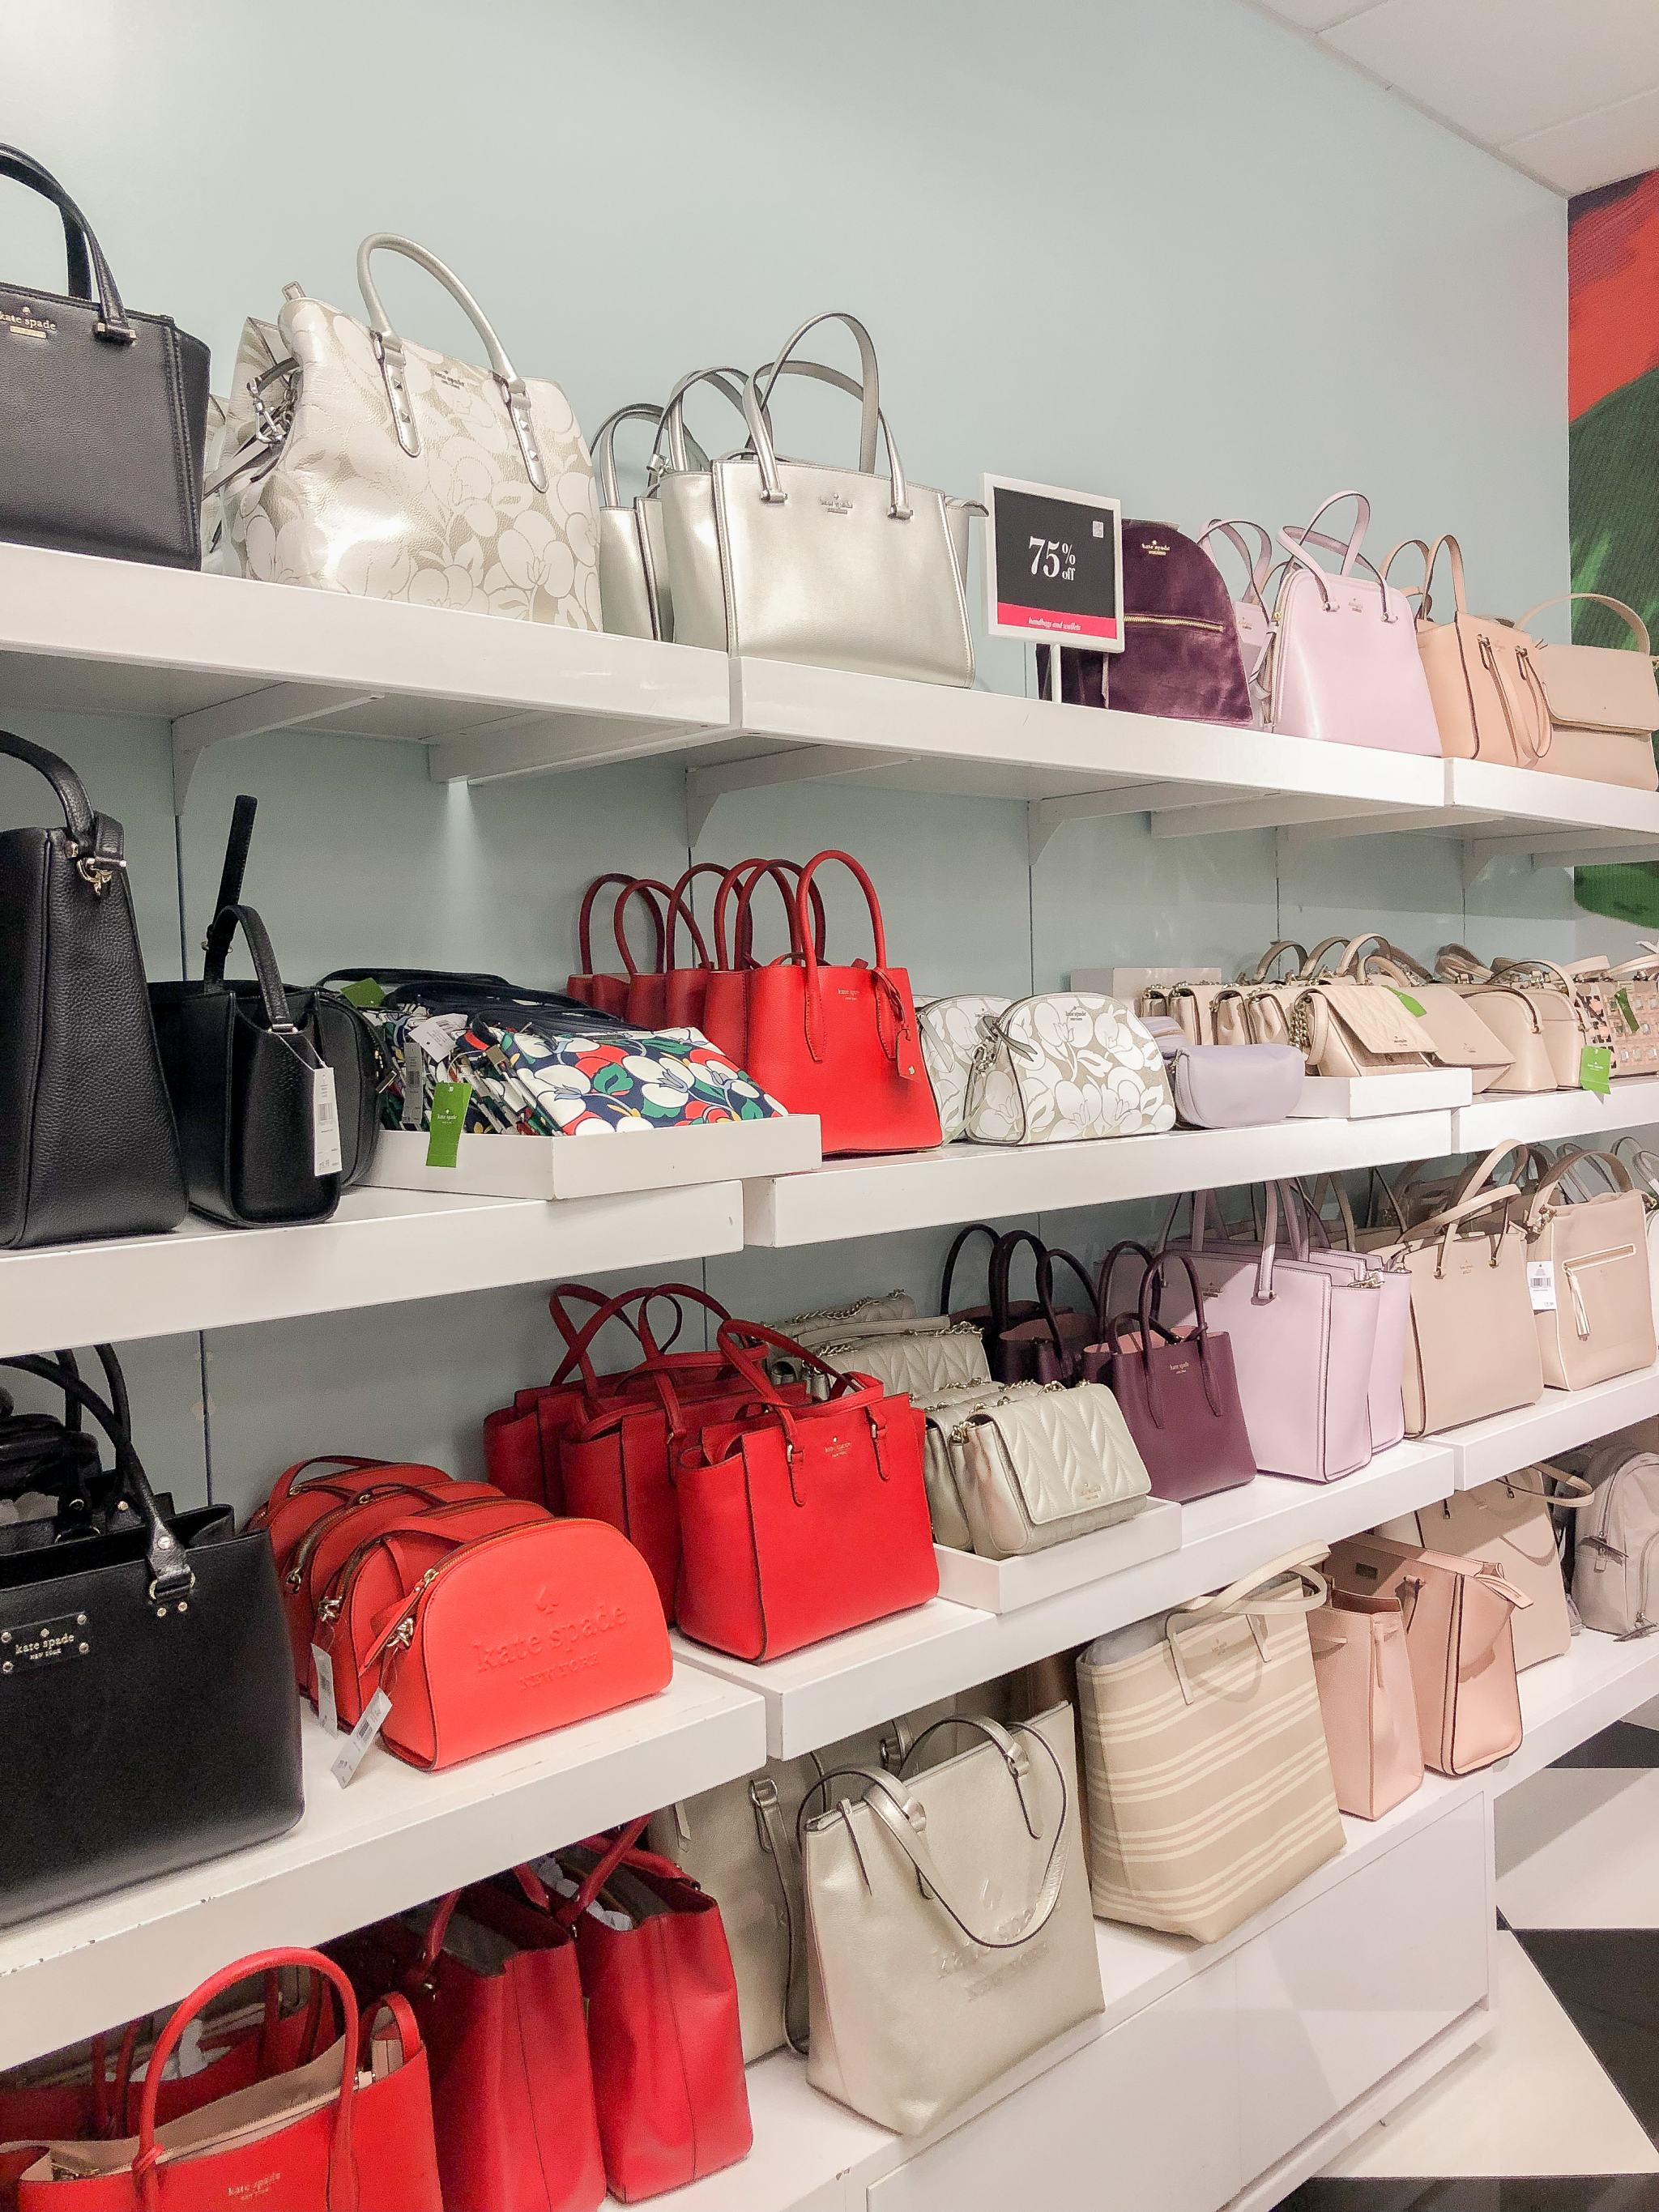 shopping at Waikele Premium Outlets - Simon Center Outlets - outlet mall Hawaii - Oahu outlet mall - back to school shopping Hawaii - outlet mall in hawaii - kate spade new york outlet hawaii